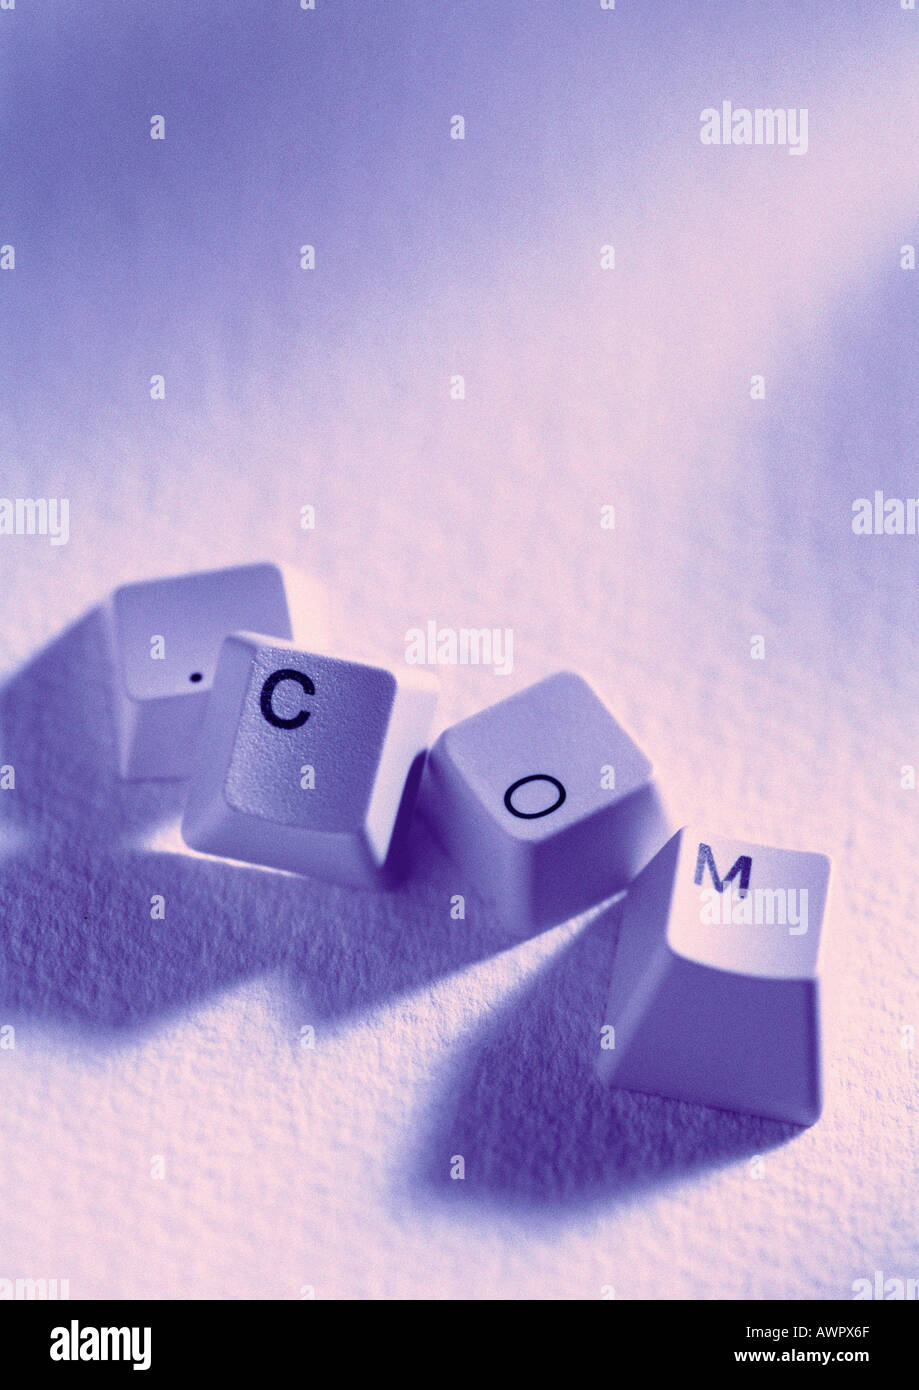 Computer keys spelling out .com - Stock Image